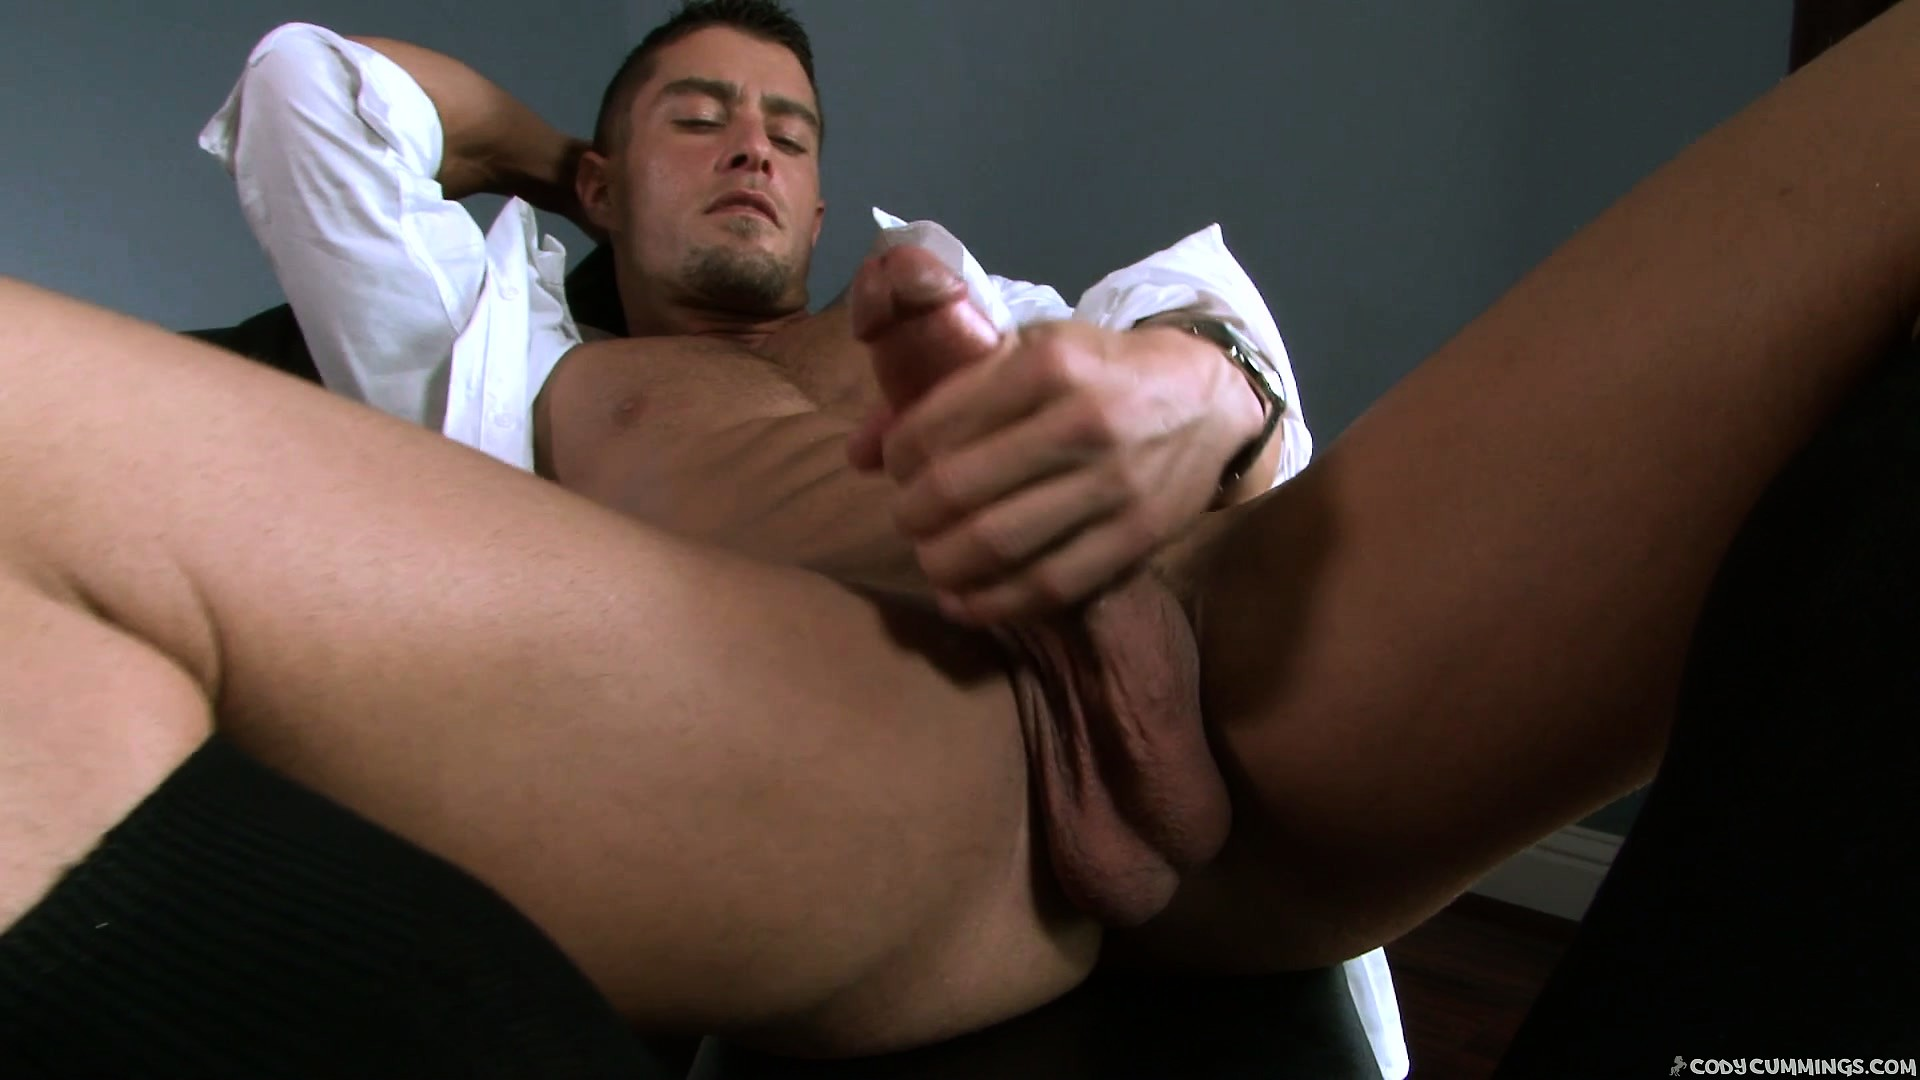 Porno Video of Big And Handsome Sexpert Is Driving Masses Crazy With His Passionate Attitude